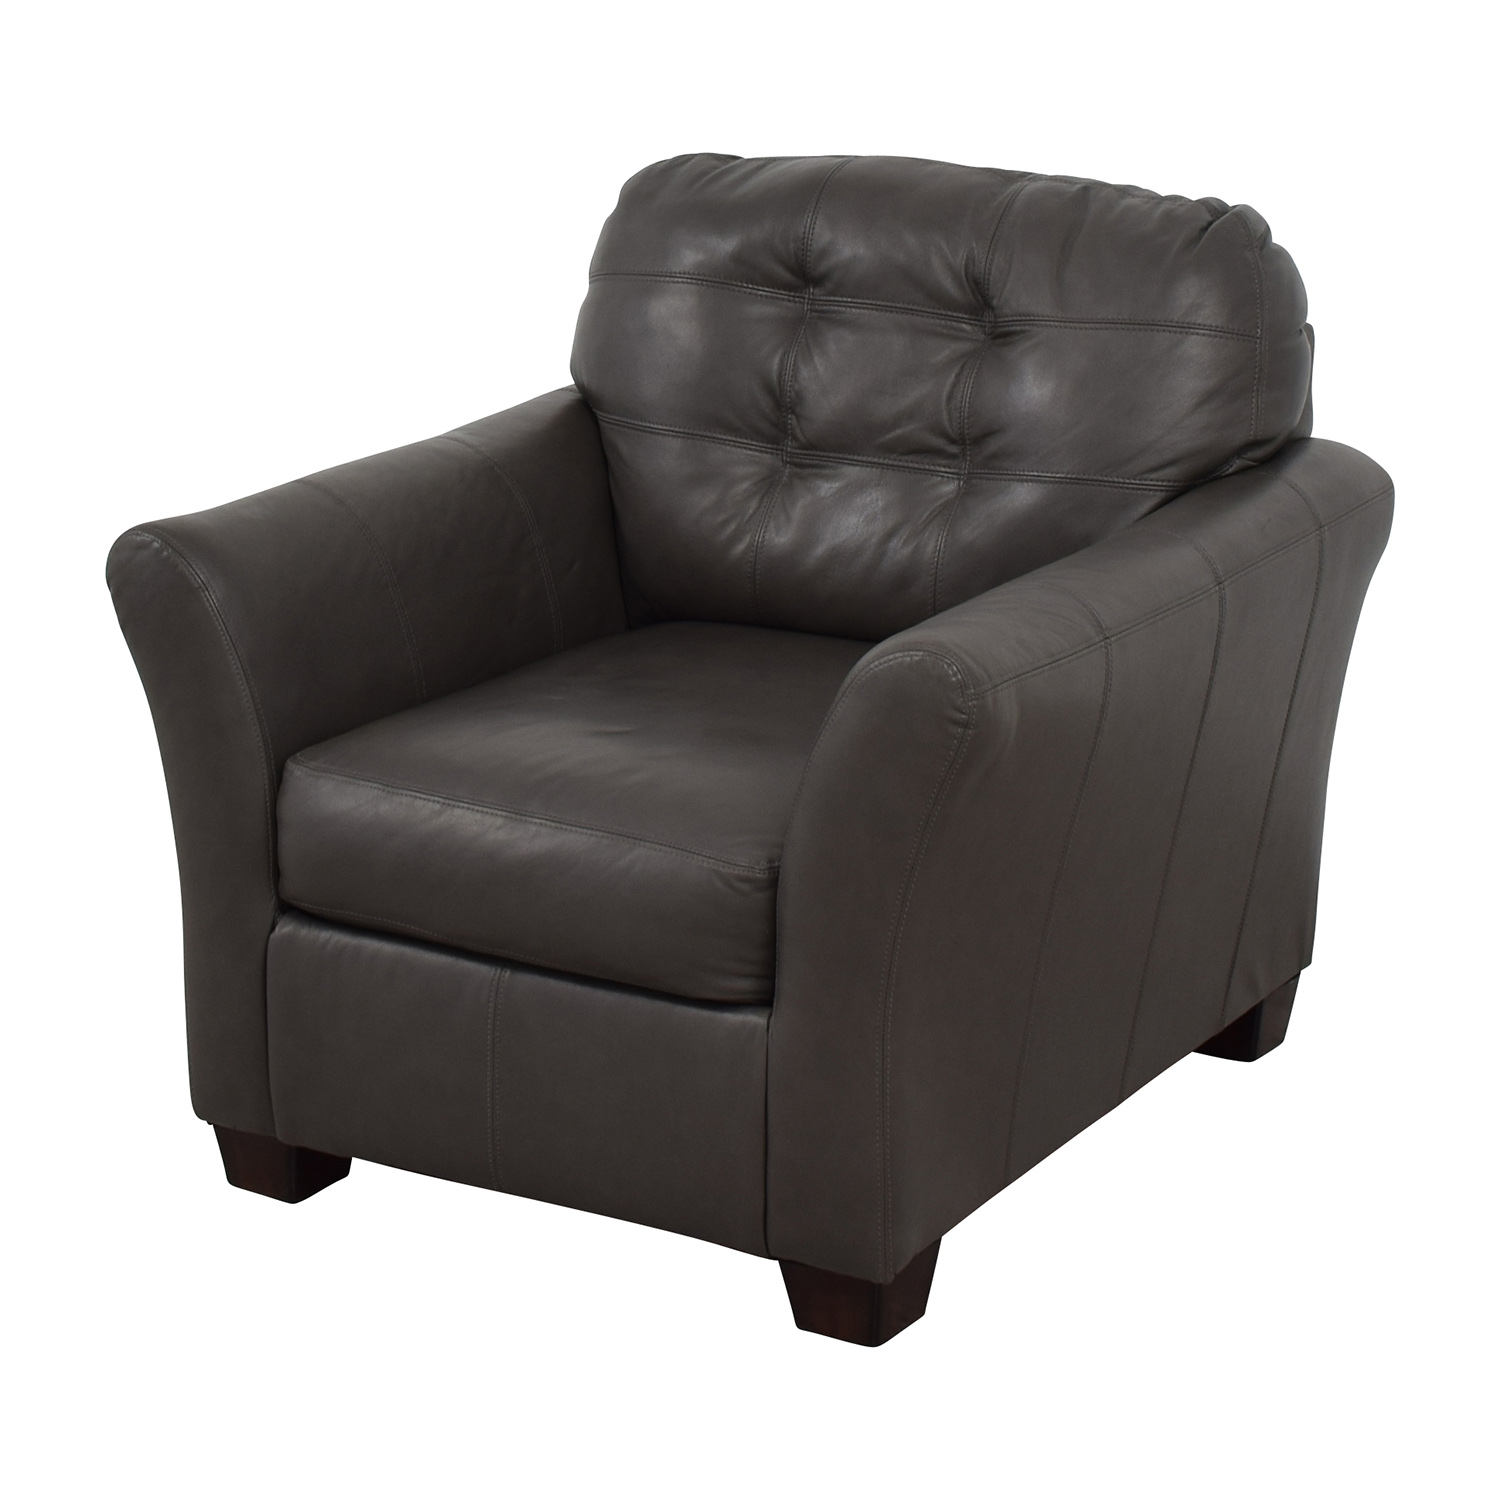 53 Off Ashley Furniture Ashley Furniture Gray Leather Chair Chairs